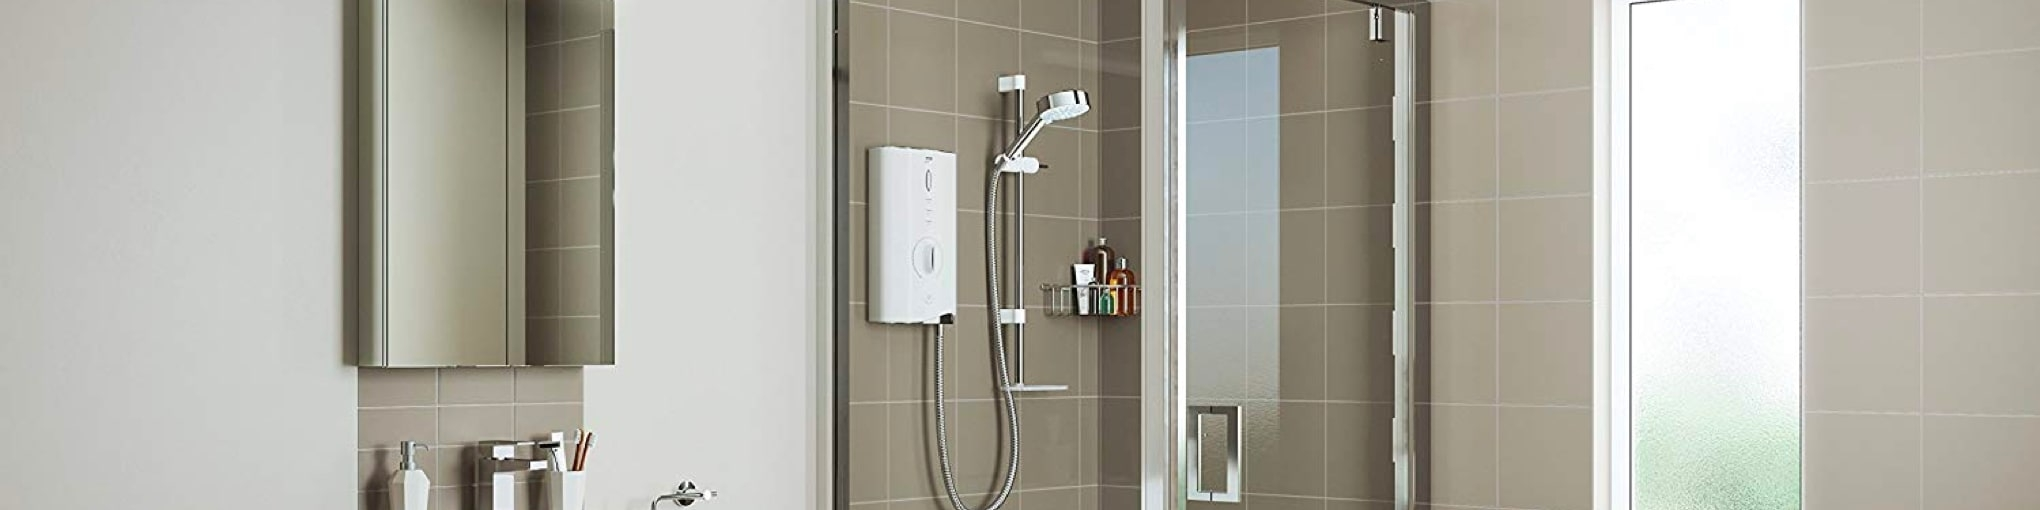 Alert Electrical - Triton Bathroom and Shower